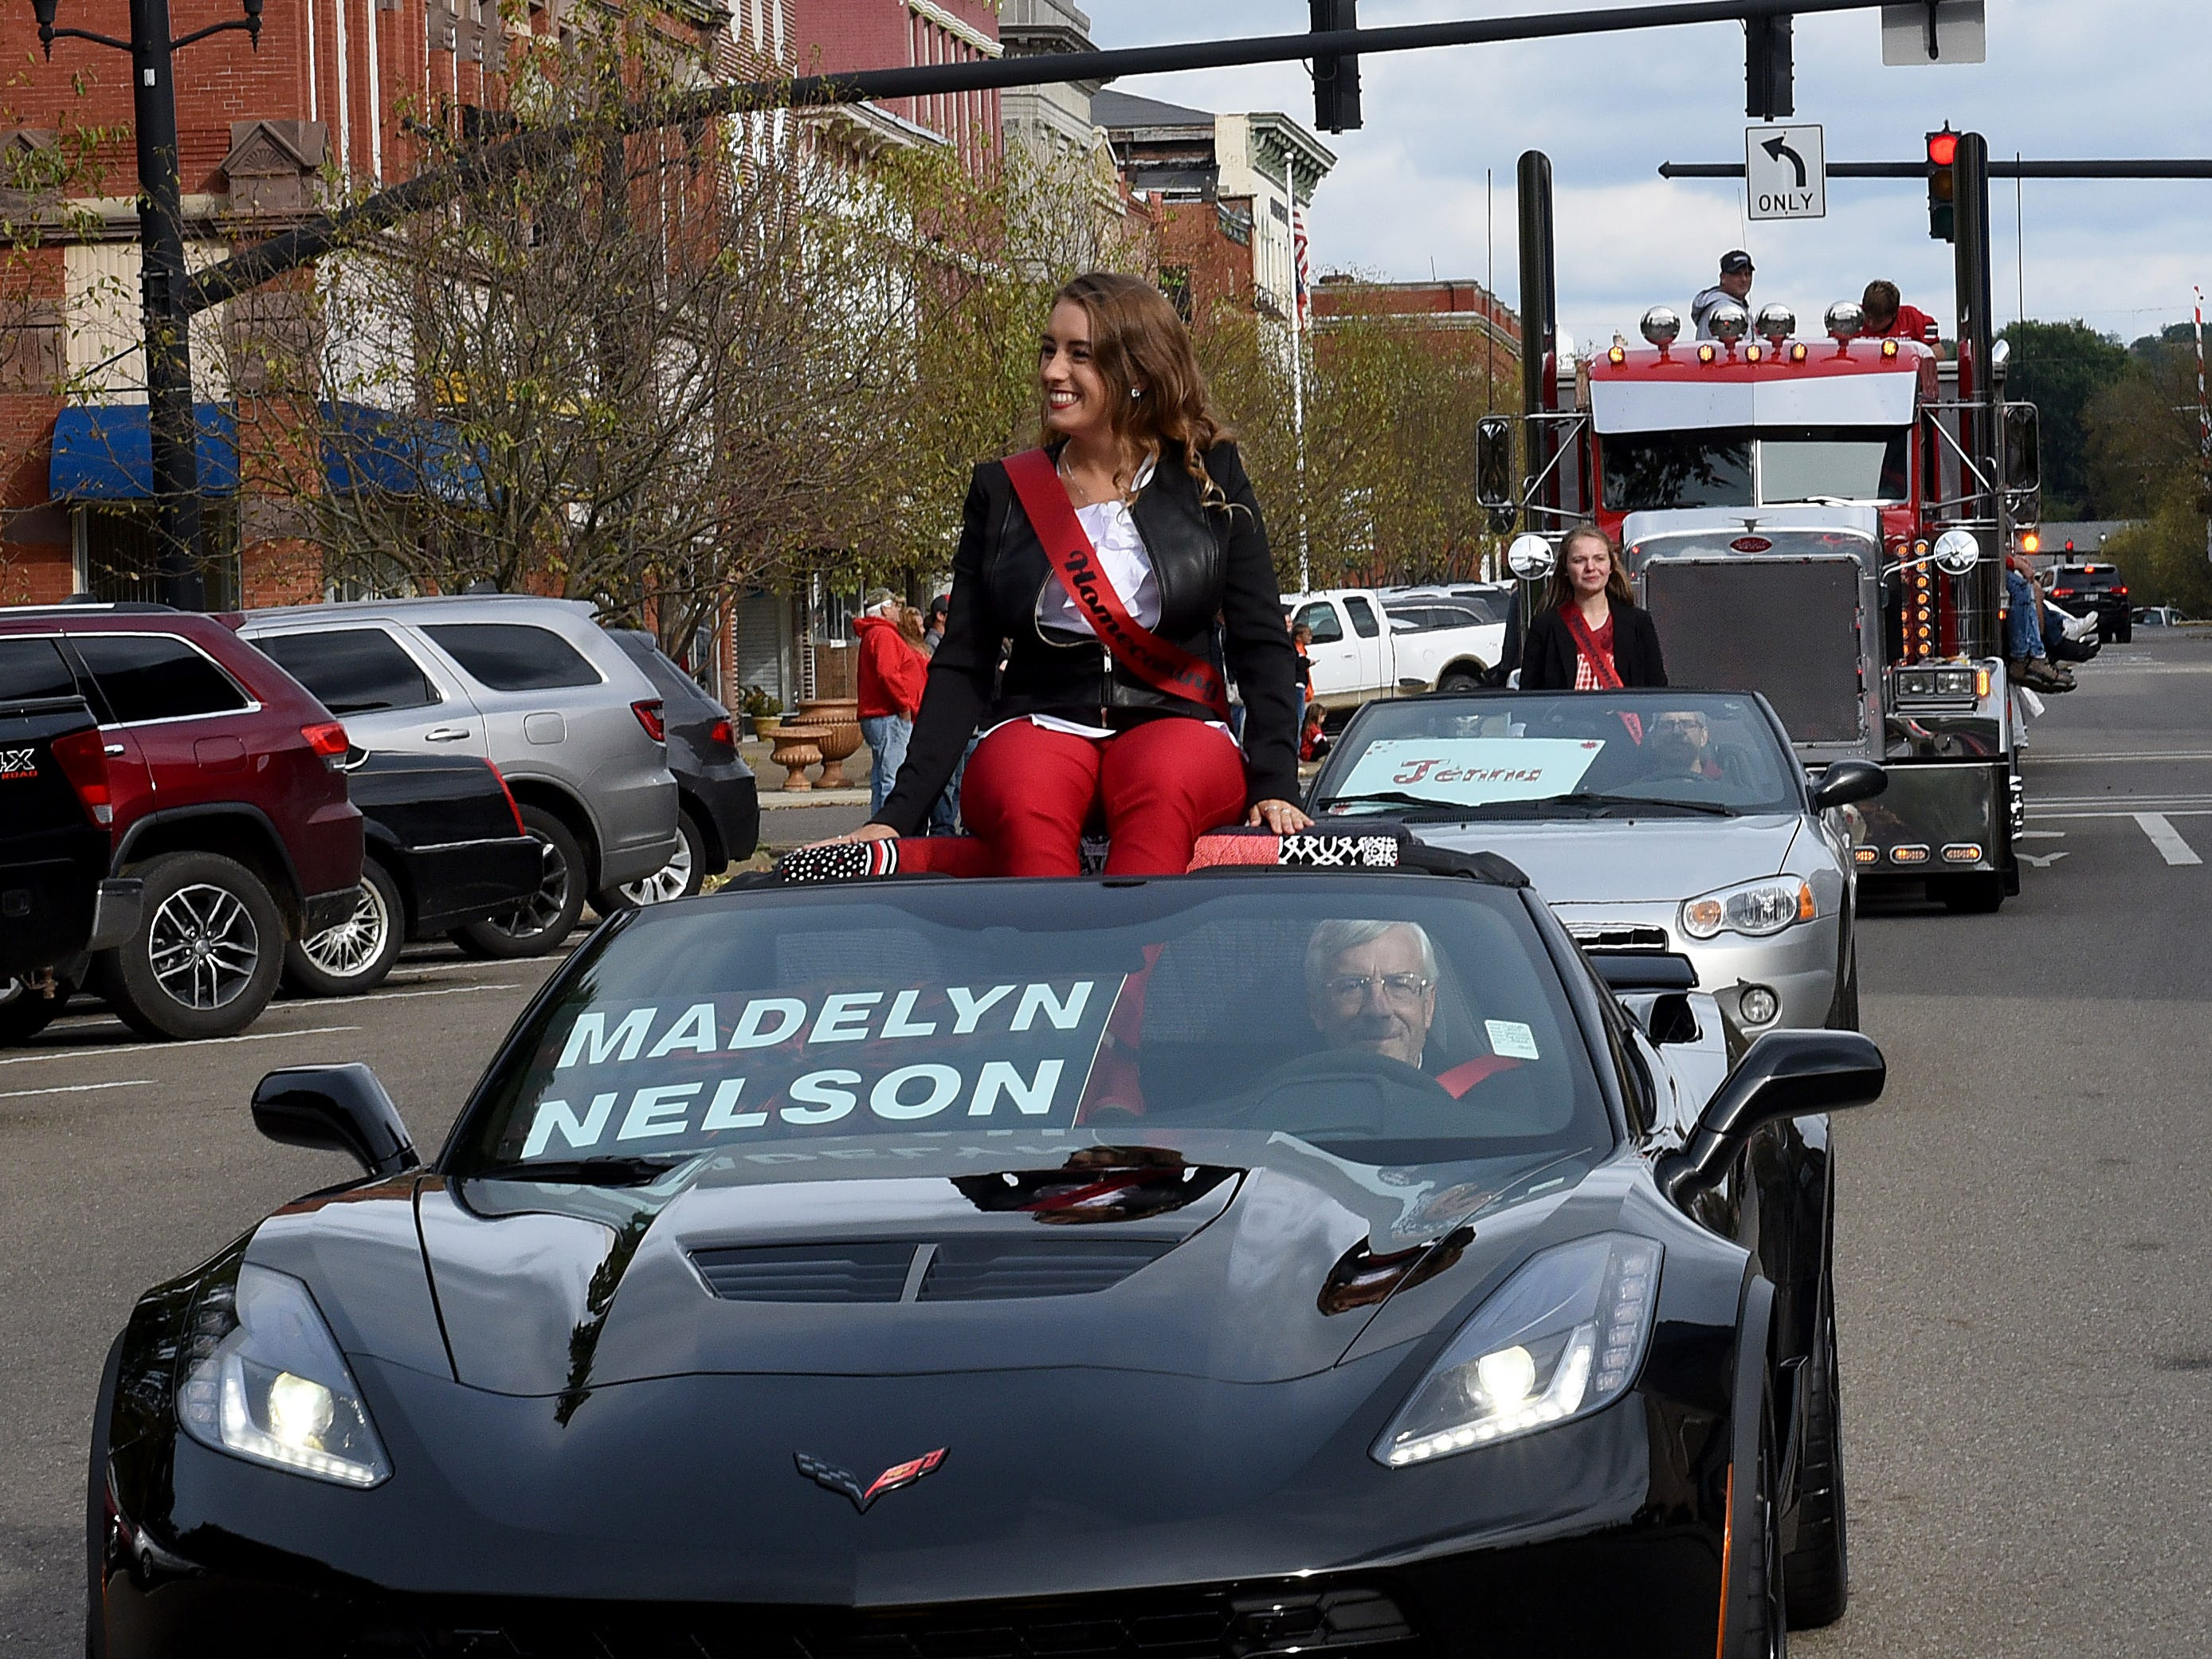 Coshocton senior and member of the homecoming court Madelyn Nelson cruises down Main Street in a convertible during the homecoming parade on Friday, Oct. 12, 2018